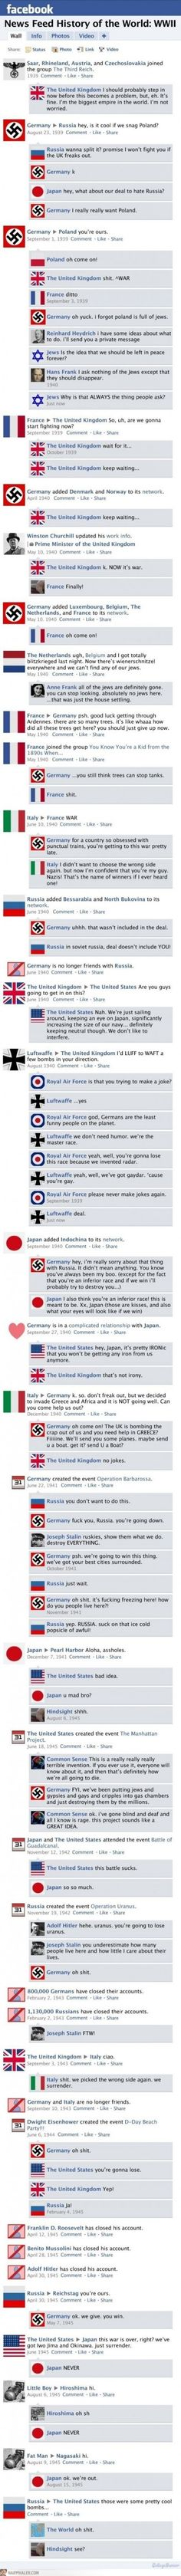 WWII Facebook feed [PIC]